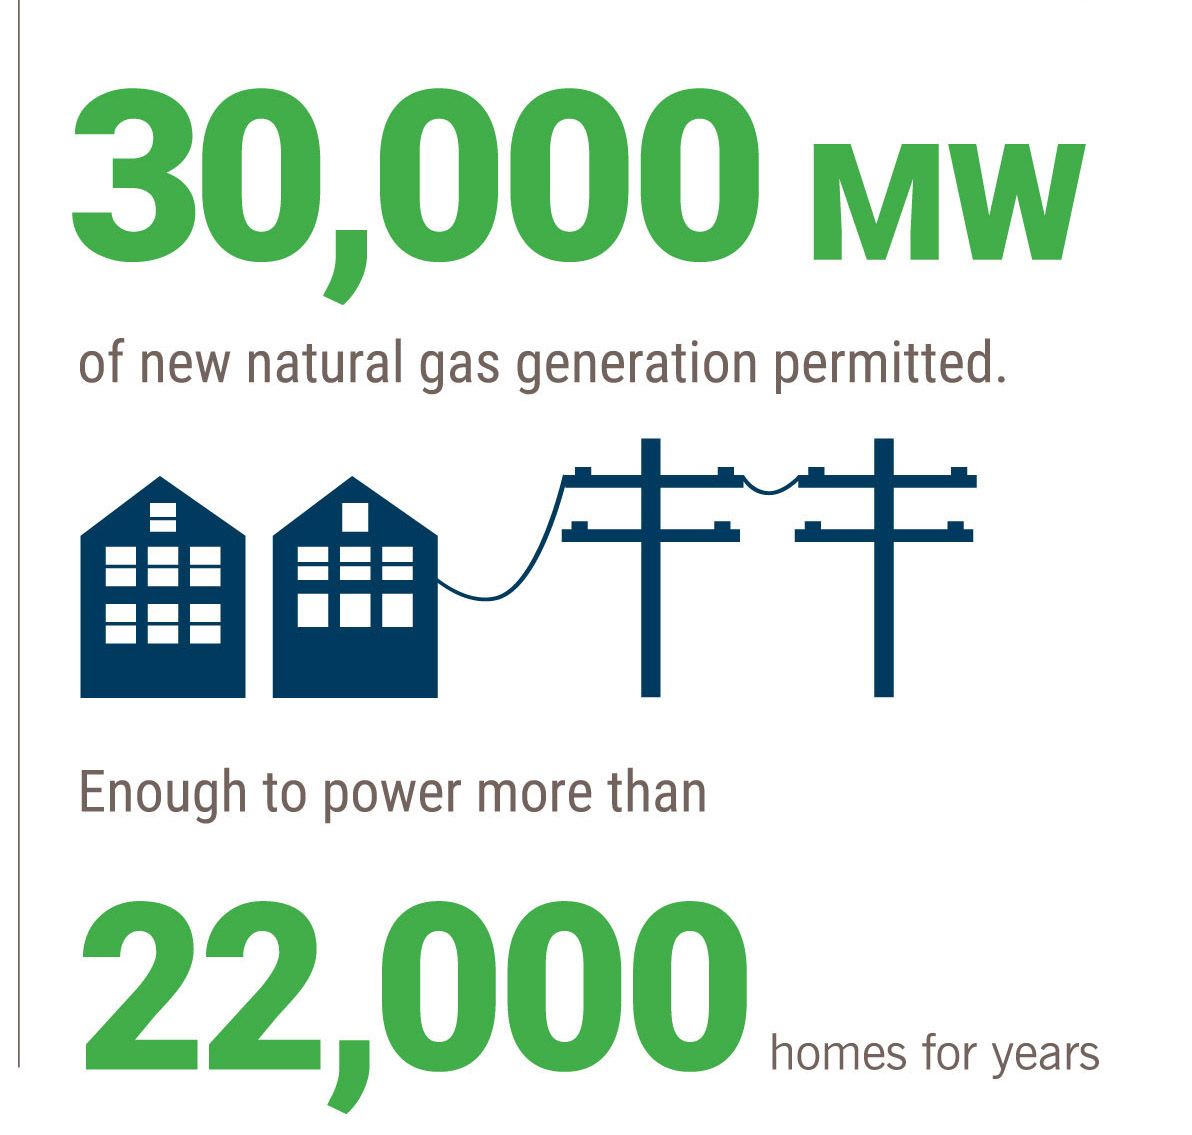 30,000 MW of new natural gas generation